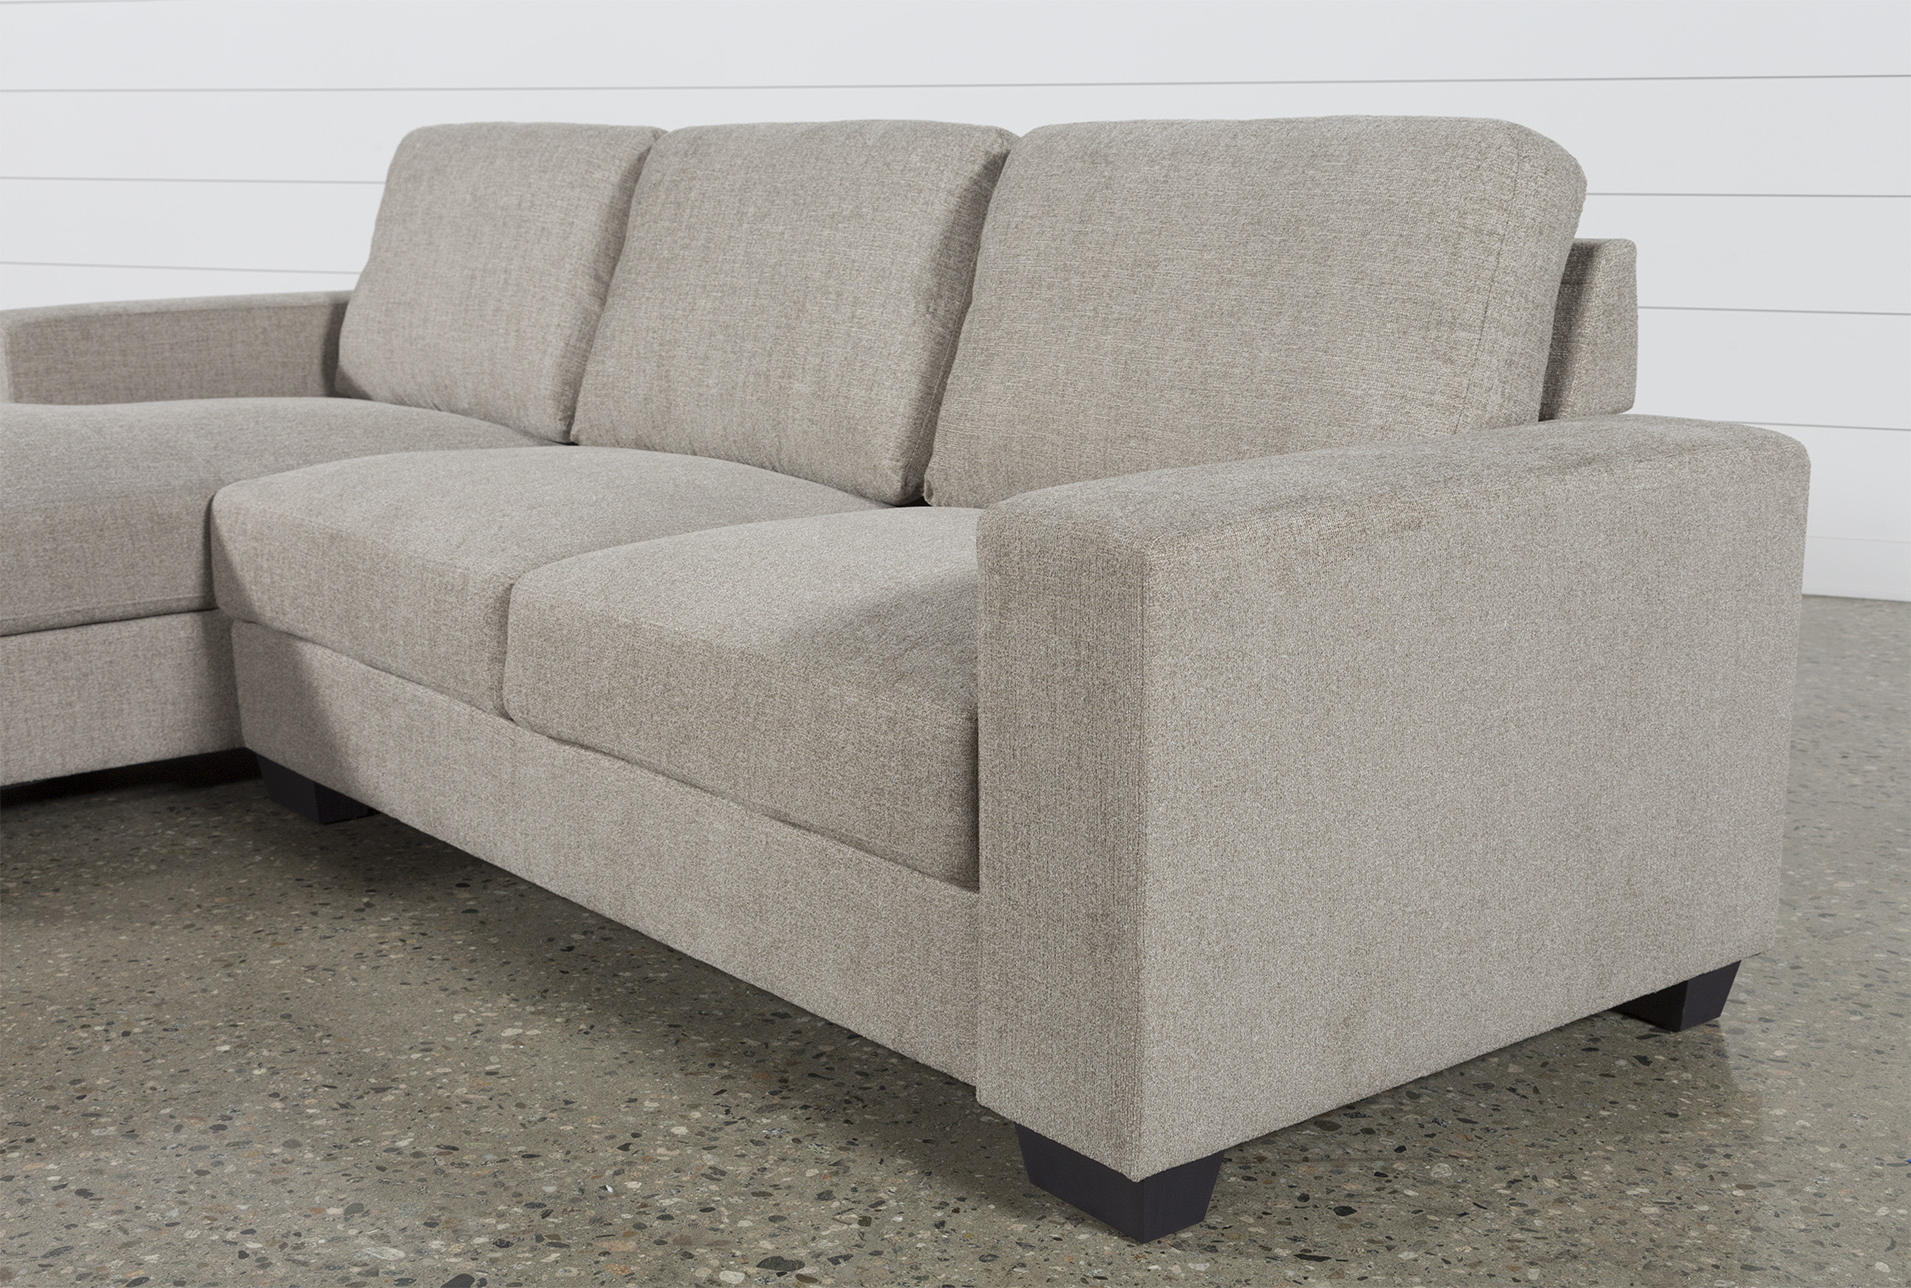 Latest Jobs Oat 2 Piece Sectional With Right Facing Chaise (View 9 of 20)